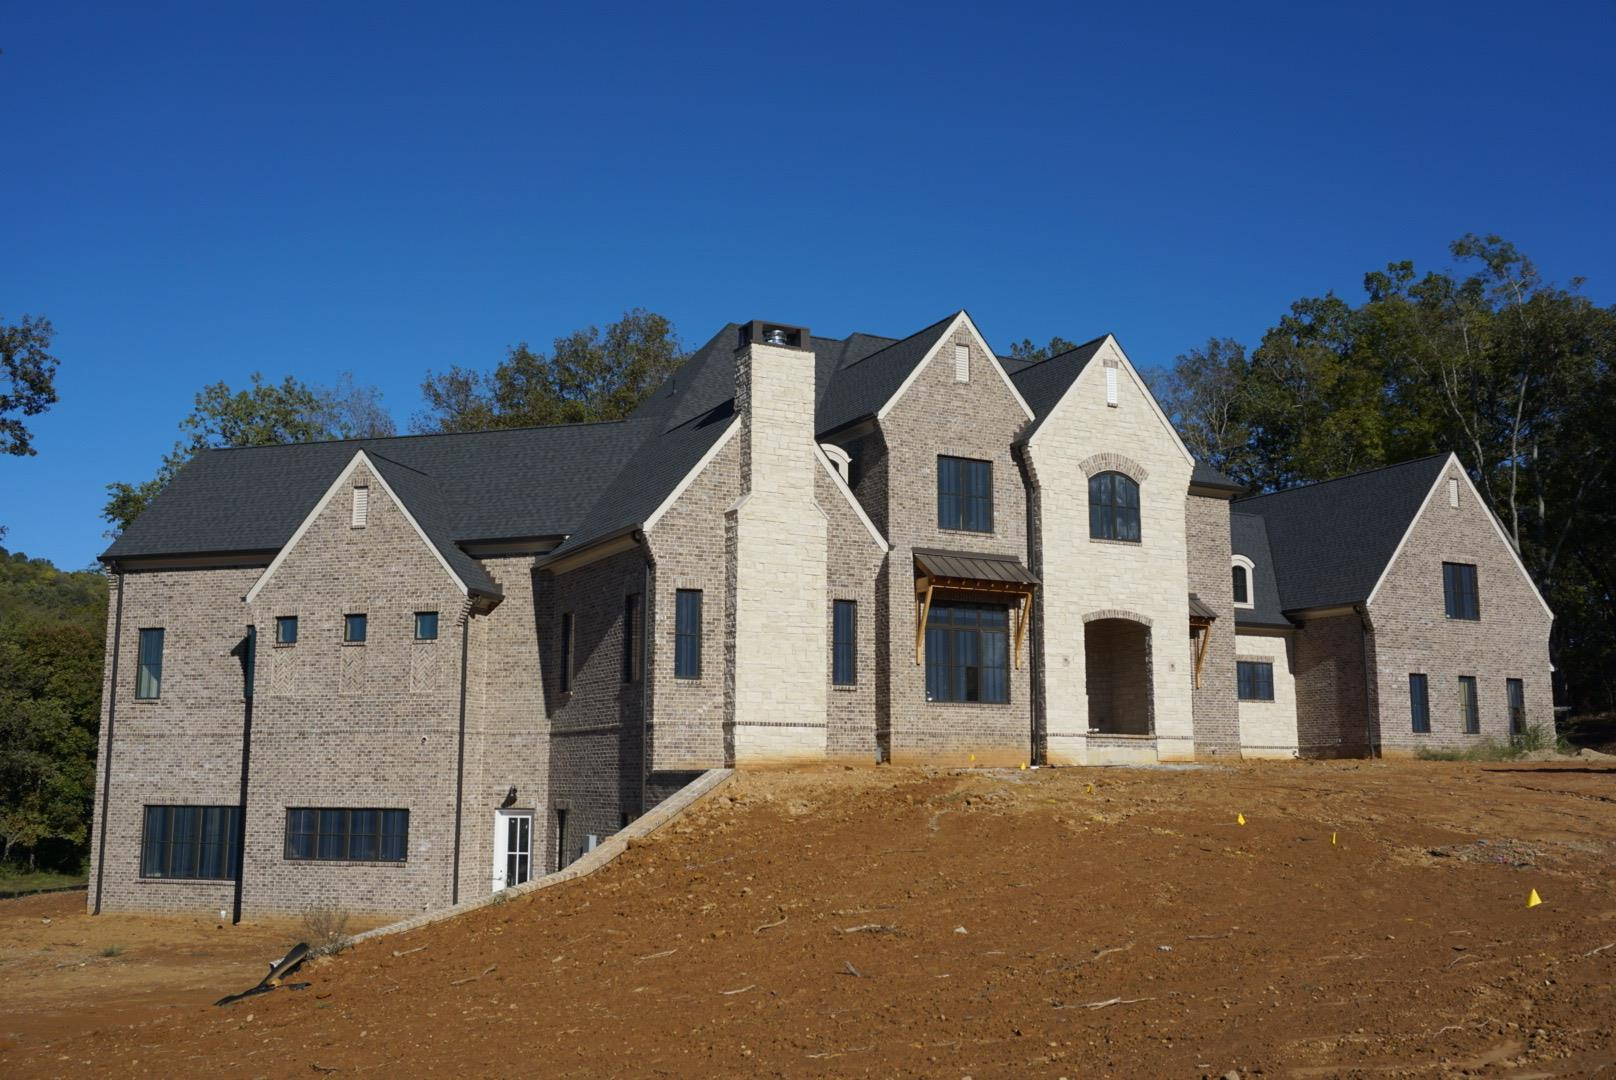 Gorgeous custom home by Trace Construction. Spacious 5 bedroom, 5 full bath plus 2 powder rooms on 3 levels. Sits on 2.2 acres at end of private cul-de-sac. See media for floor plan/dimensions. Great private outdoor living space! LOCATION is spectacular in this secluded luxury gated community!